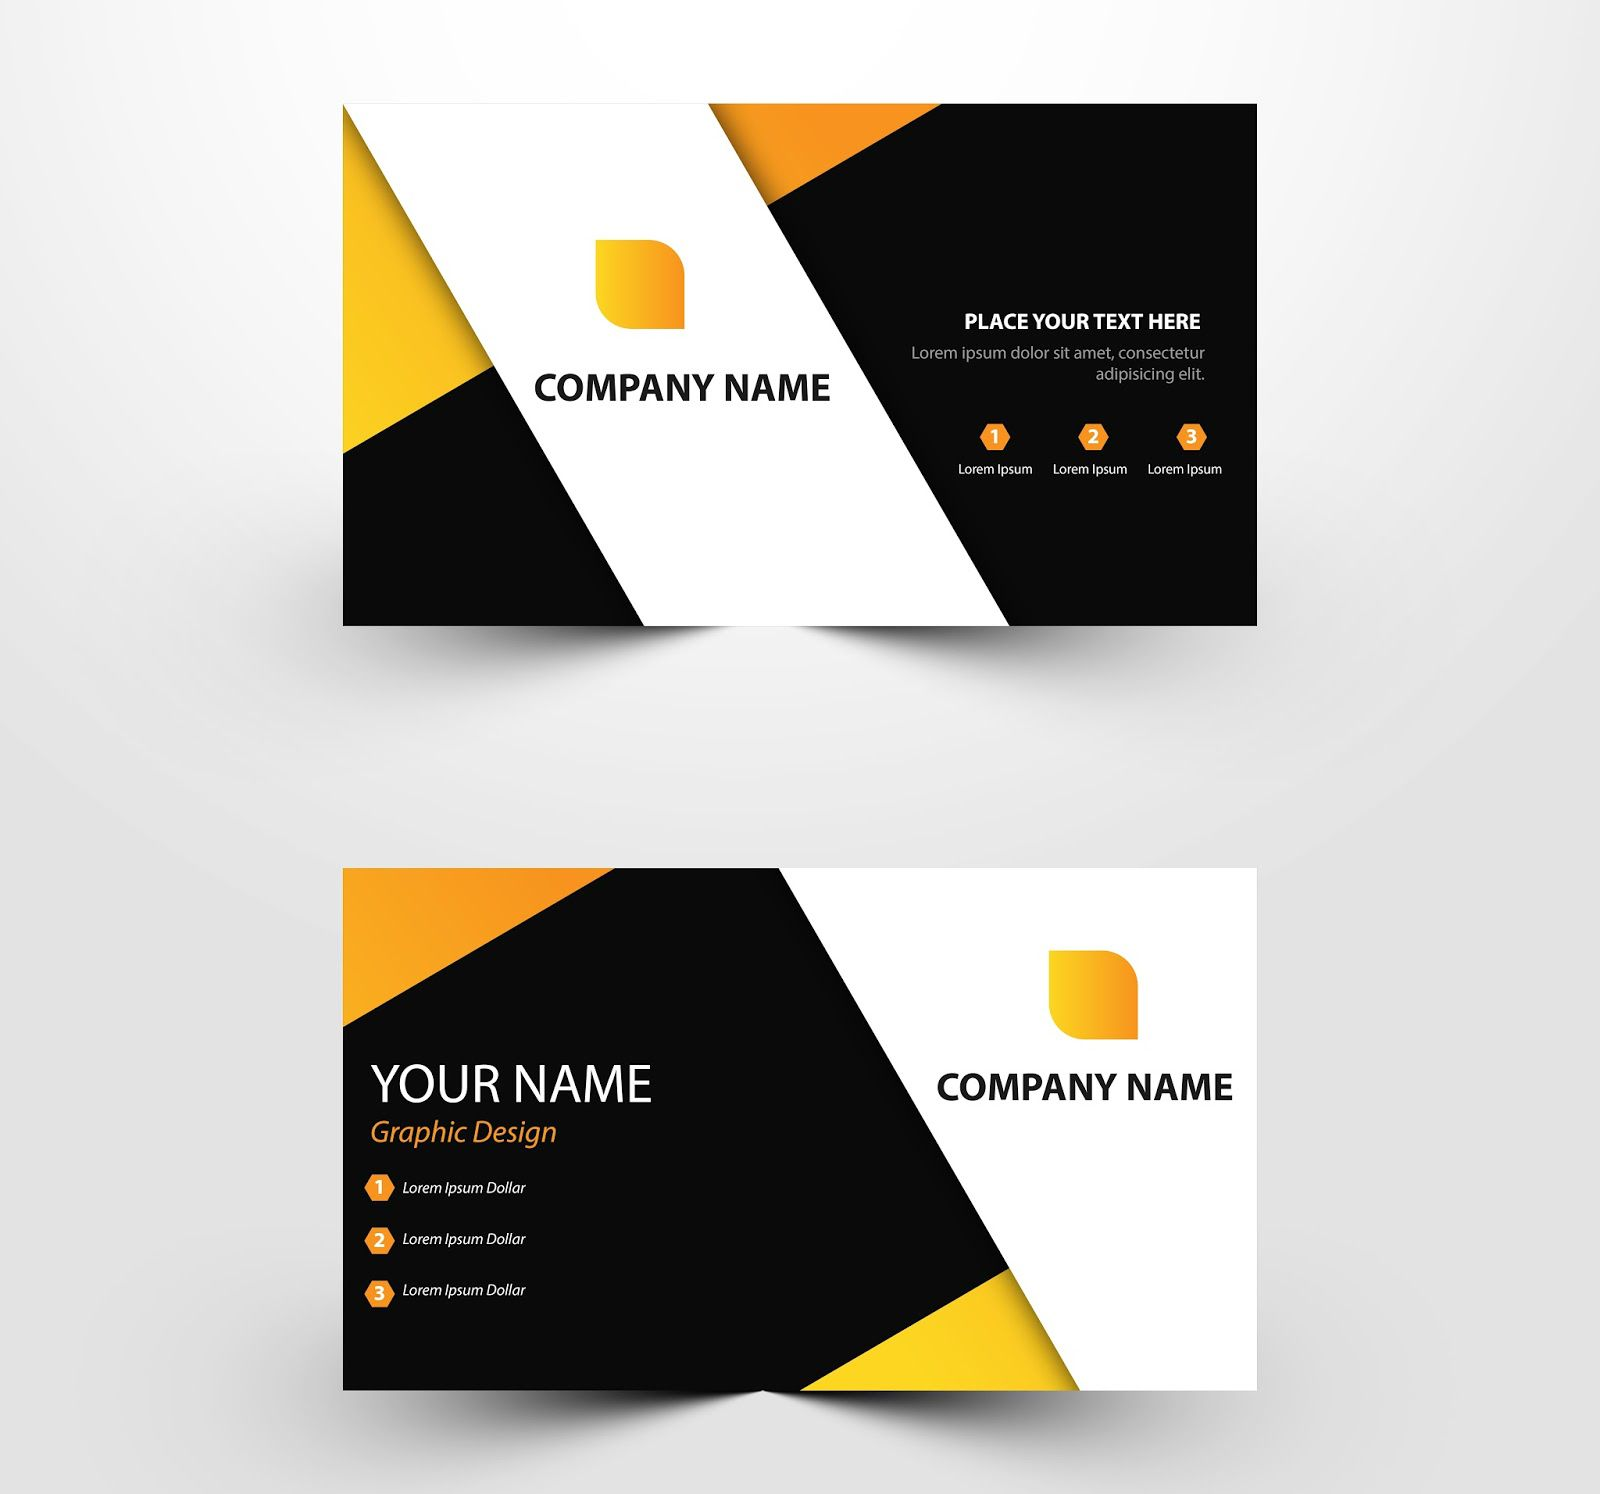 009 Awful Free Download Busines Card Template Highest Quality  For Microsoft Publisher Photoshop PowerpointFull